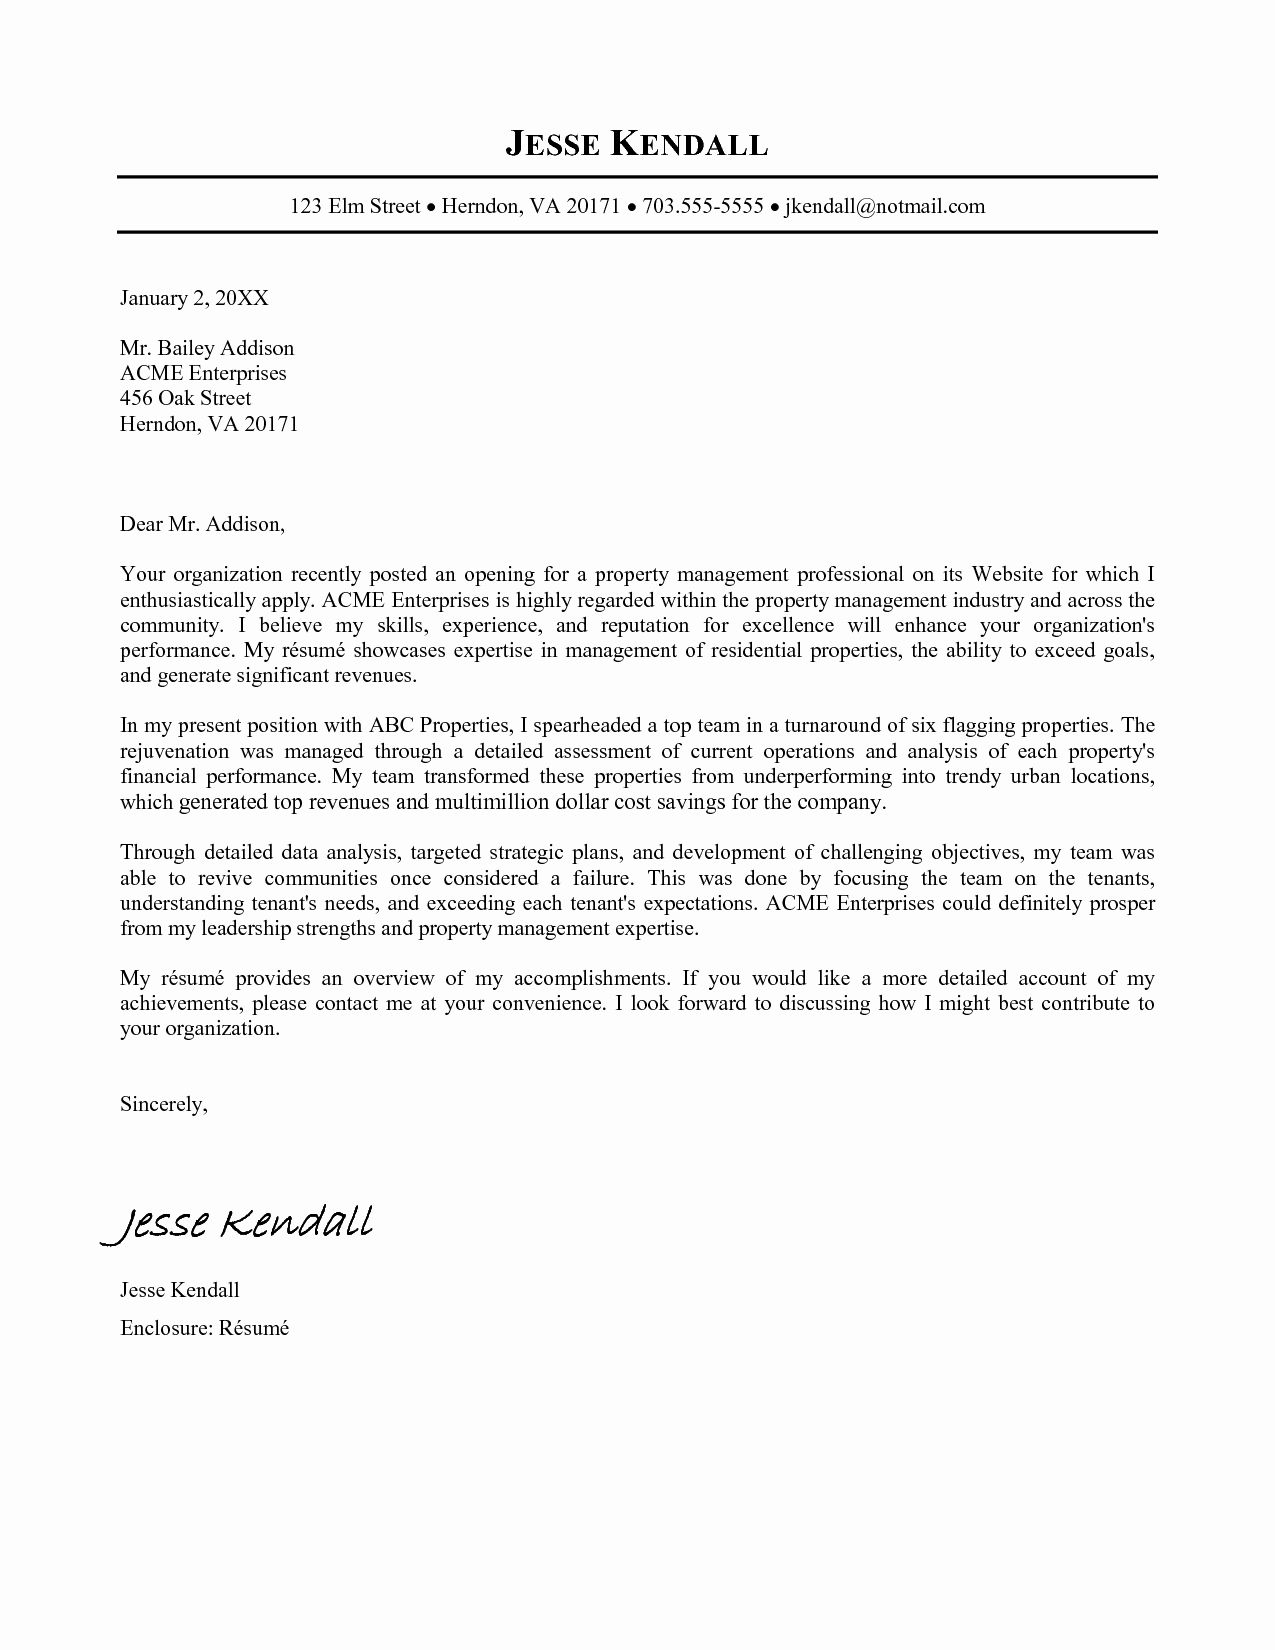 Letter Of Application Template New Standard Cover Letter Template Templates S Cover Letter For Resume Resume Cover Letter Examples Job Application Cover Letter